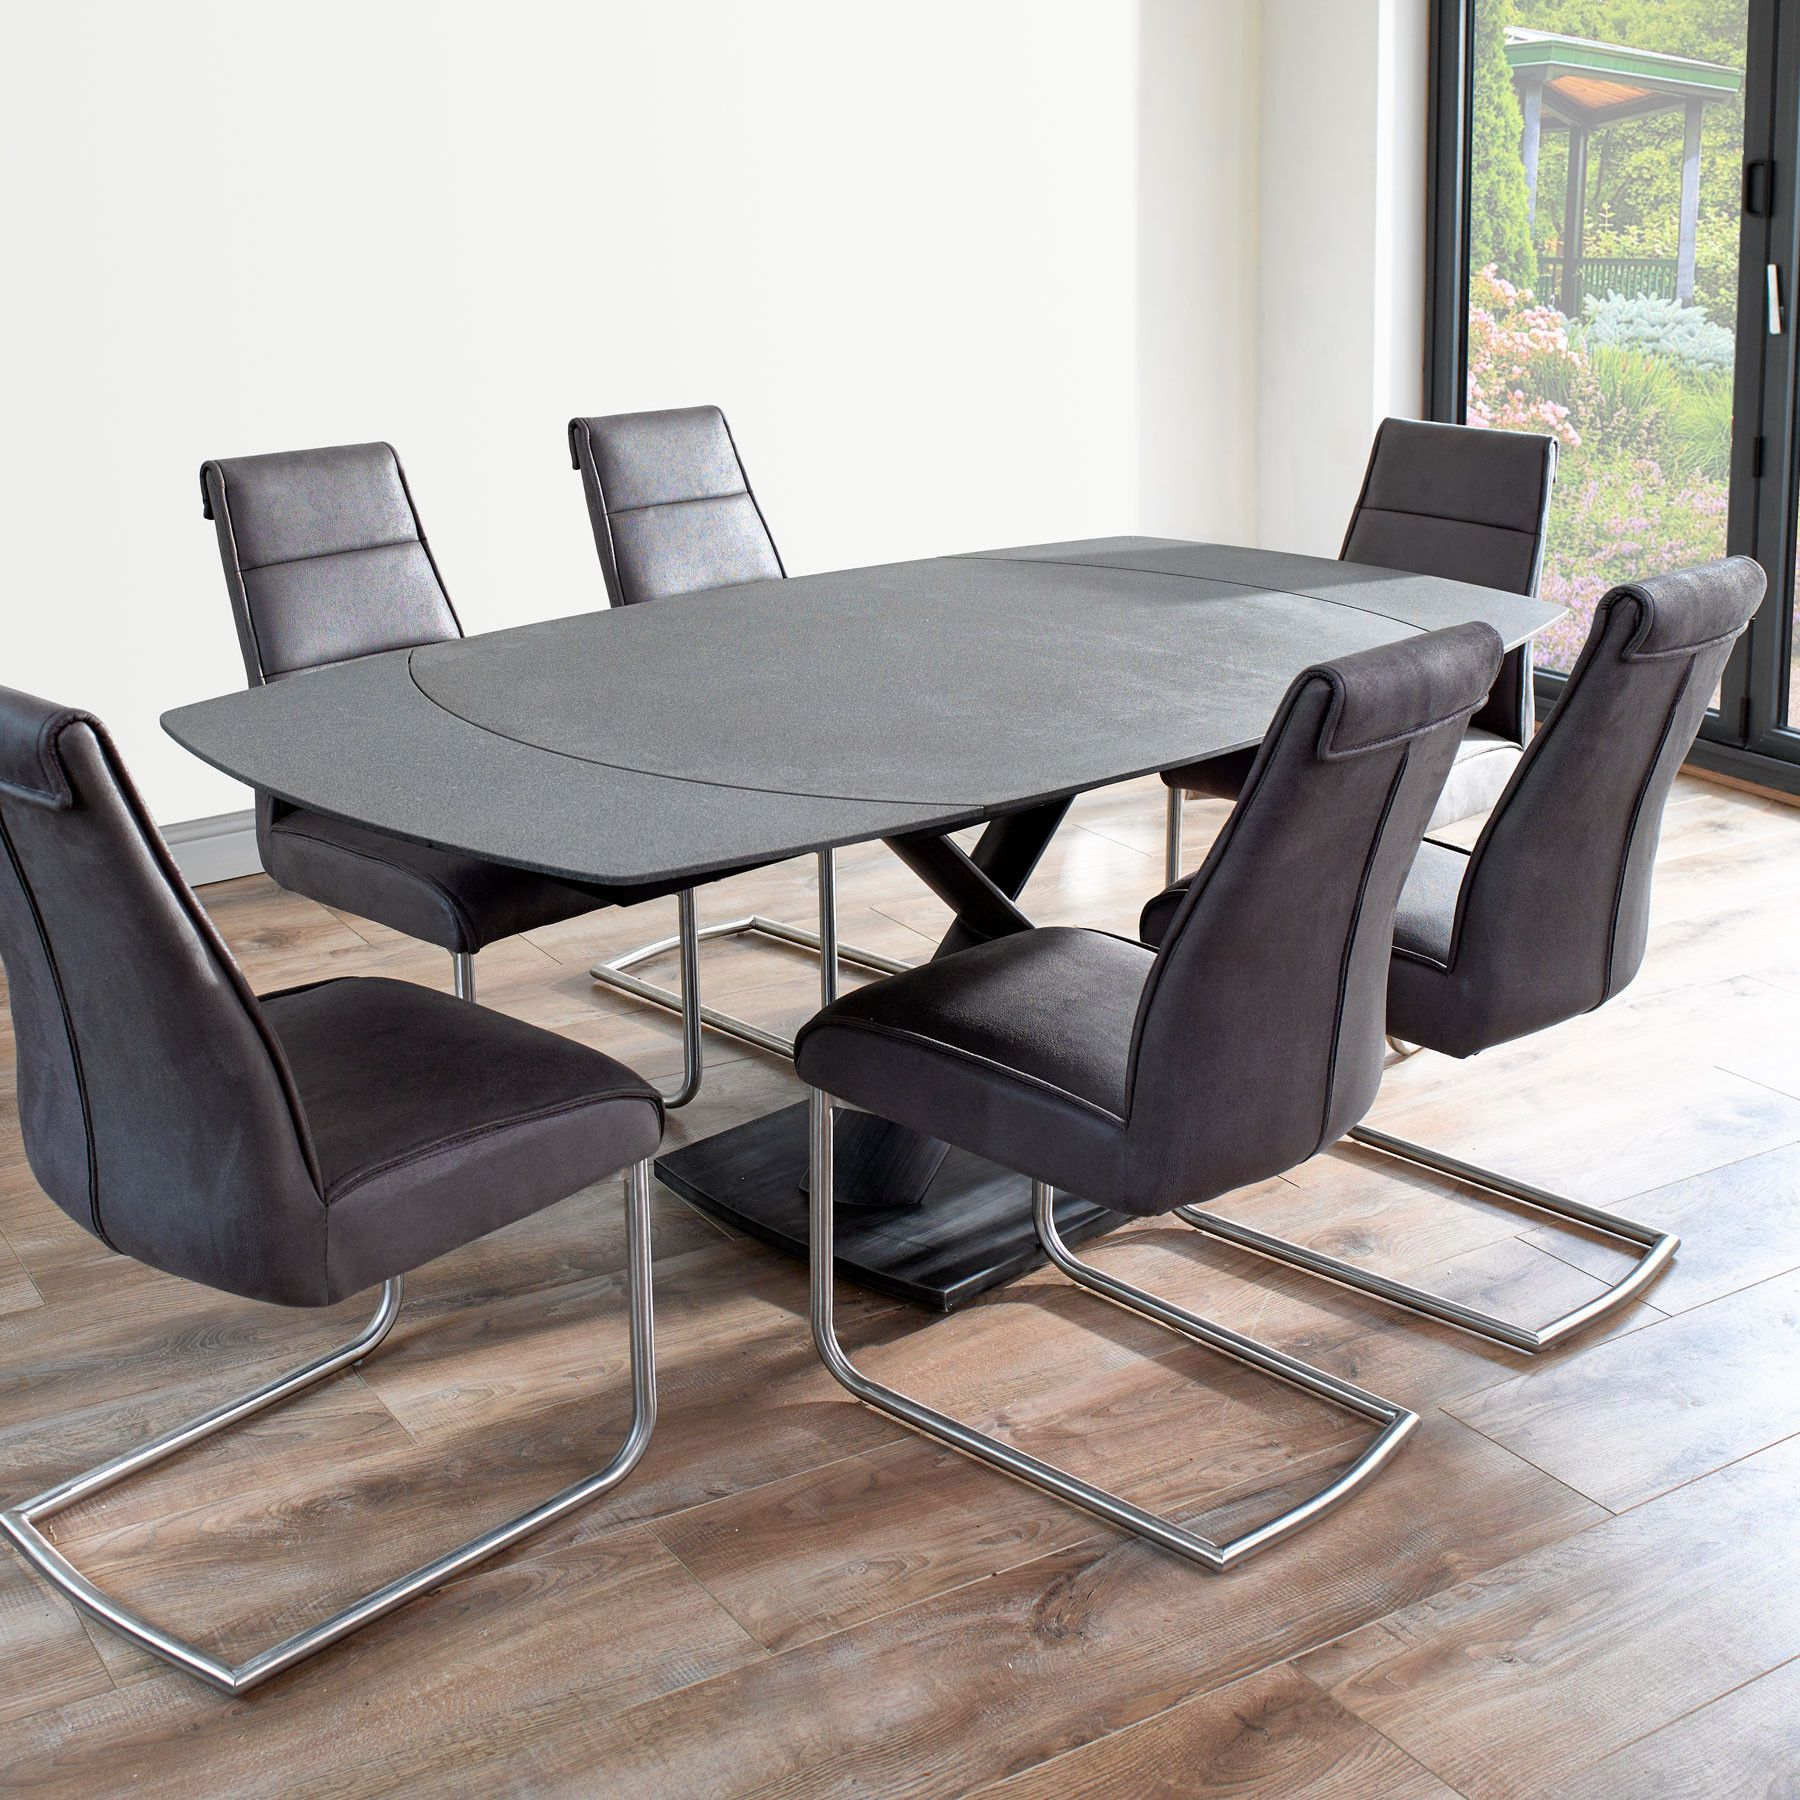 Merveilleux Domasco Revolving Extending Dining Table And 6 Chairs